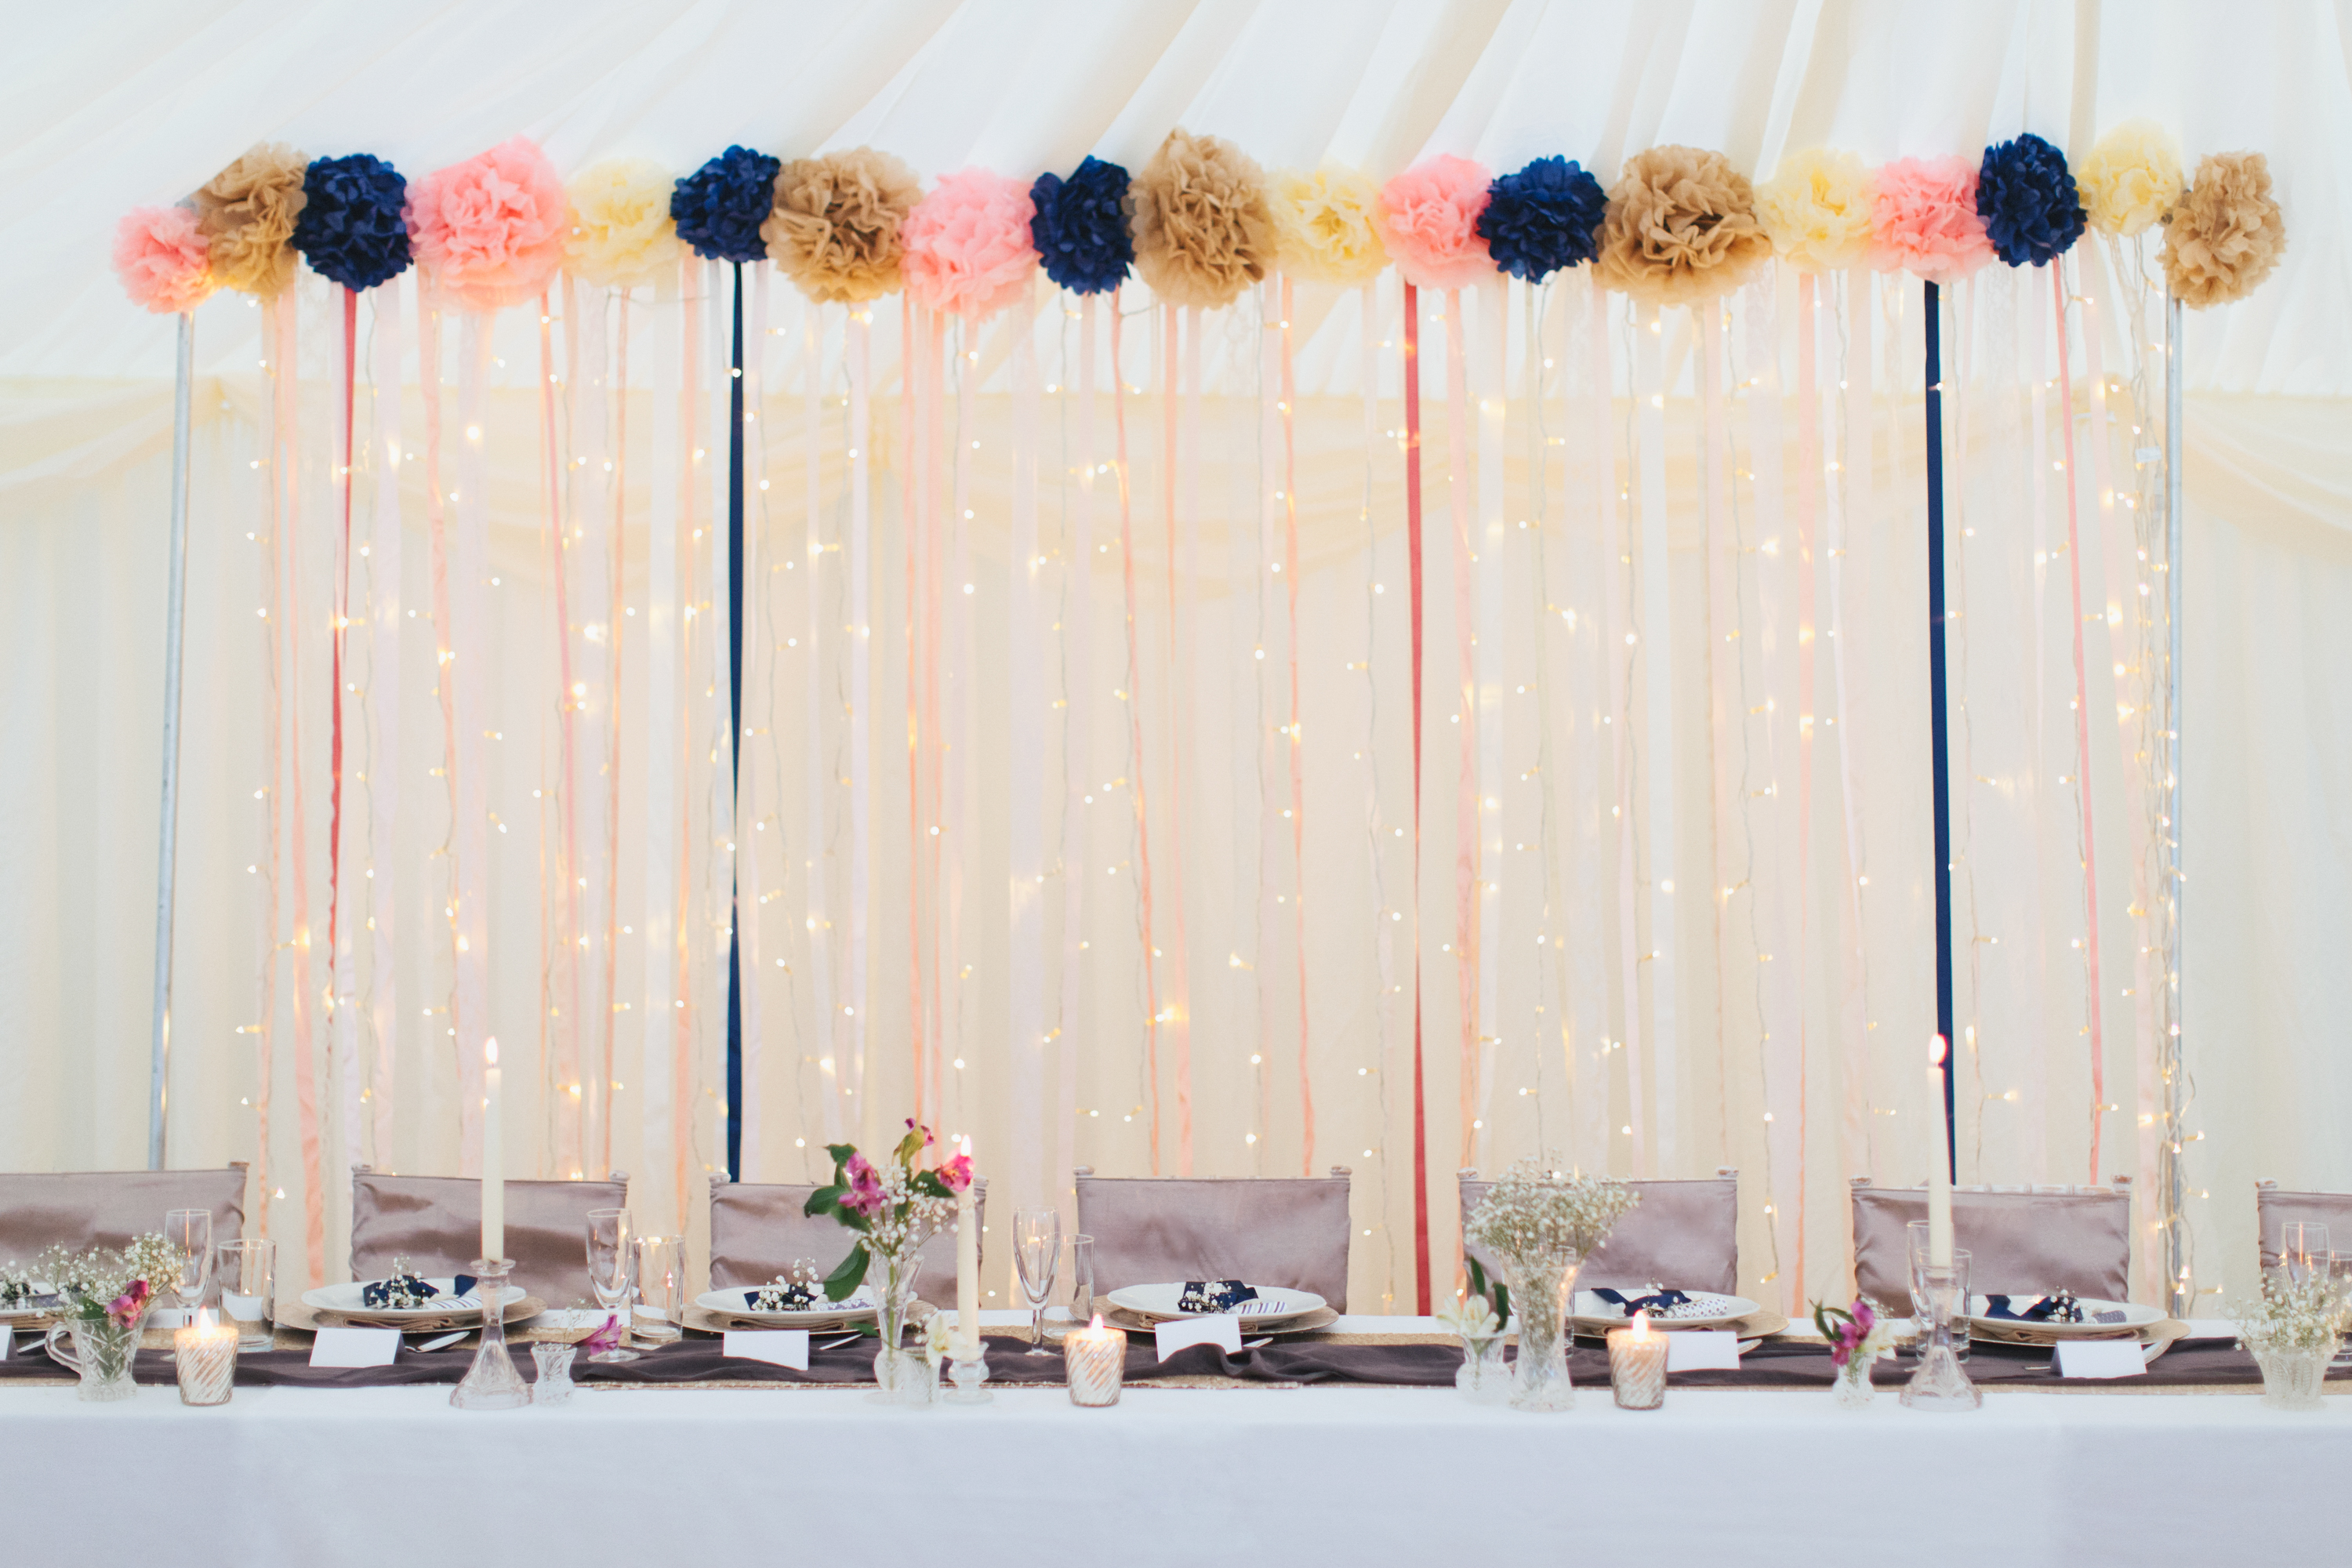 Lighting and Ribbon backdrop